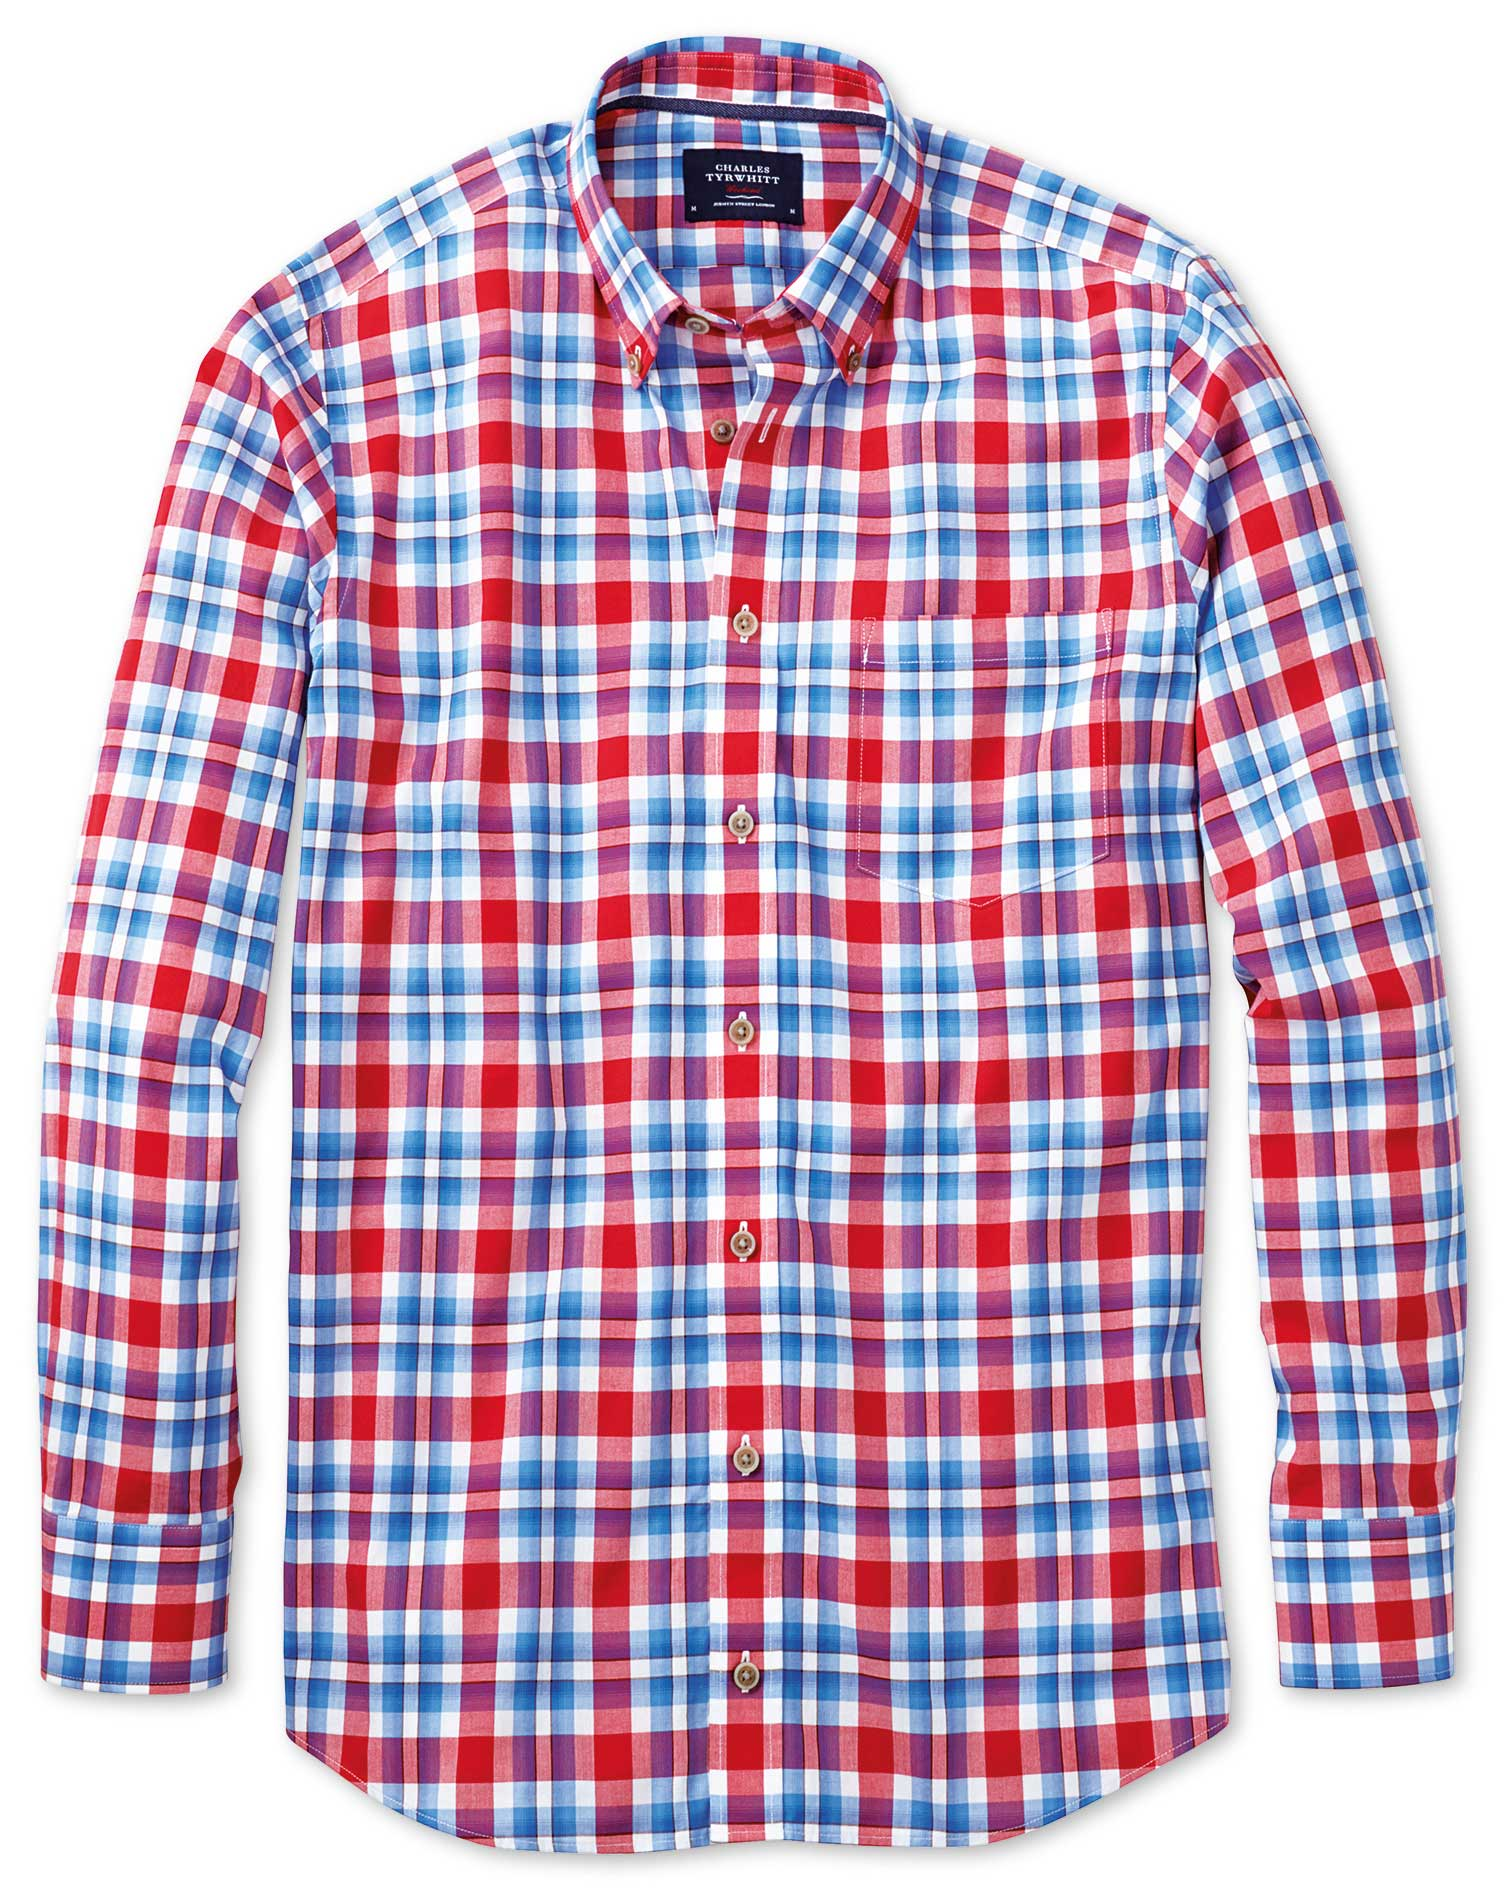 Slim Fit Button-Down Poplin Sky Blue and Red Check Cotton Shirt Single Cuff Size XS by Charles Tyrwh